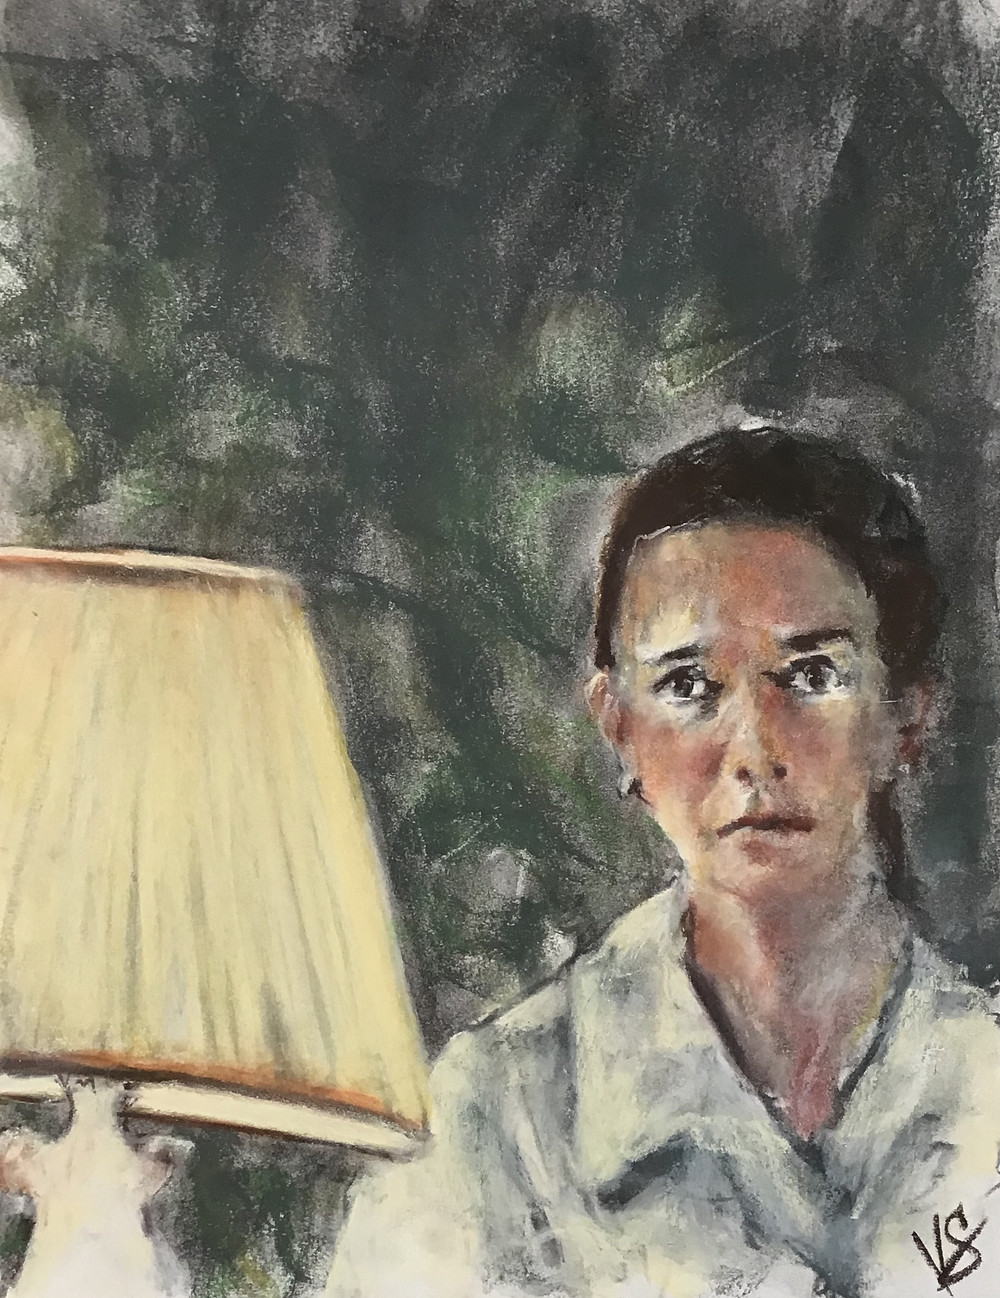 The news. (pastel, 14x11 inches/35x27 cm) - Impressionistic conceptualized figurative pastel on paper... a woman upon hearing something rather shocking